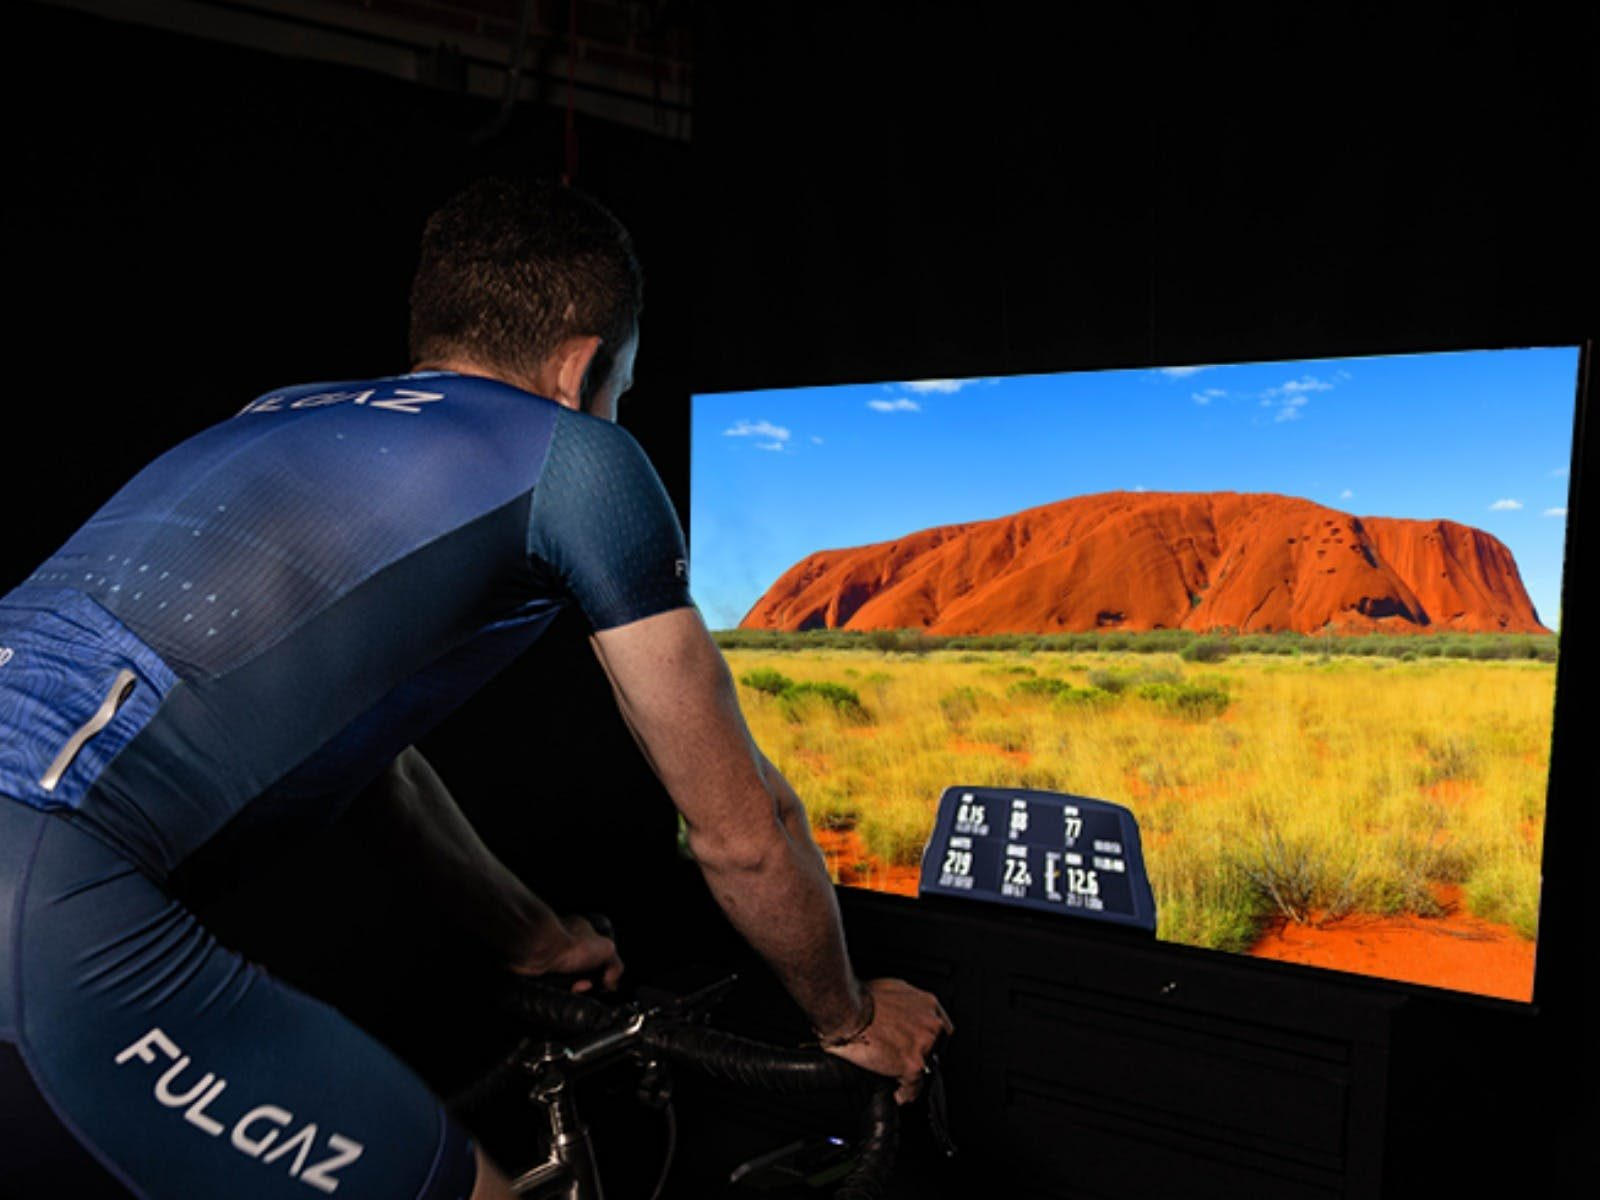 Hope Cycle - Tour of Australia, presented by Lifeline